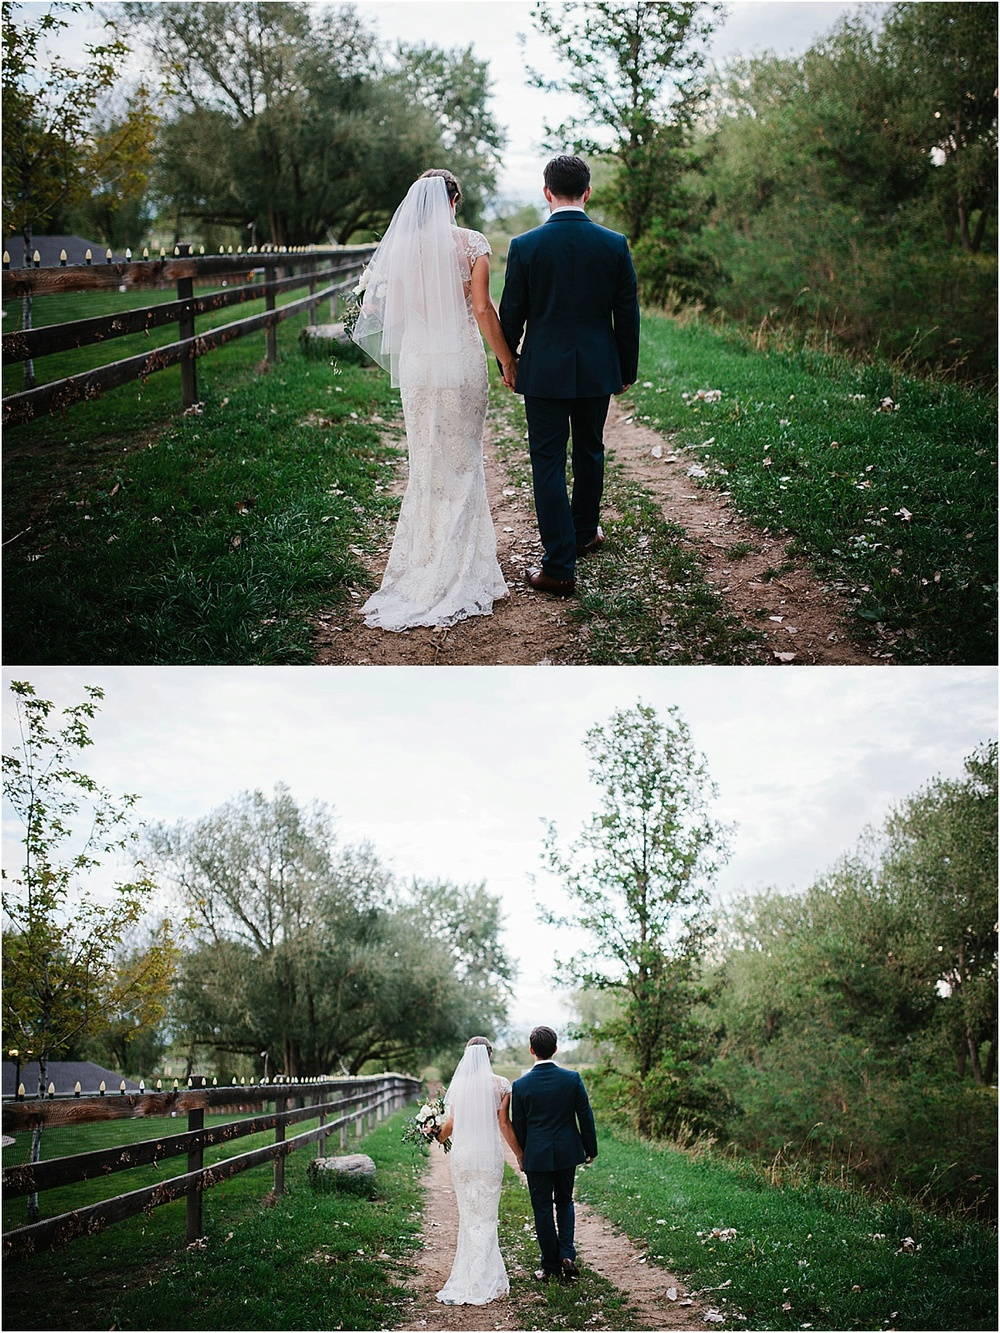 manzanita photo by rebecca caridad internation wedding photogrpaher, colorado wedding photographer, nashville wedding photographer_0282.jpg